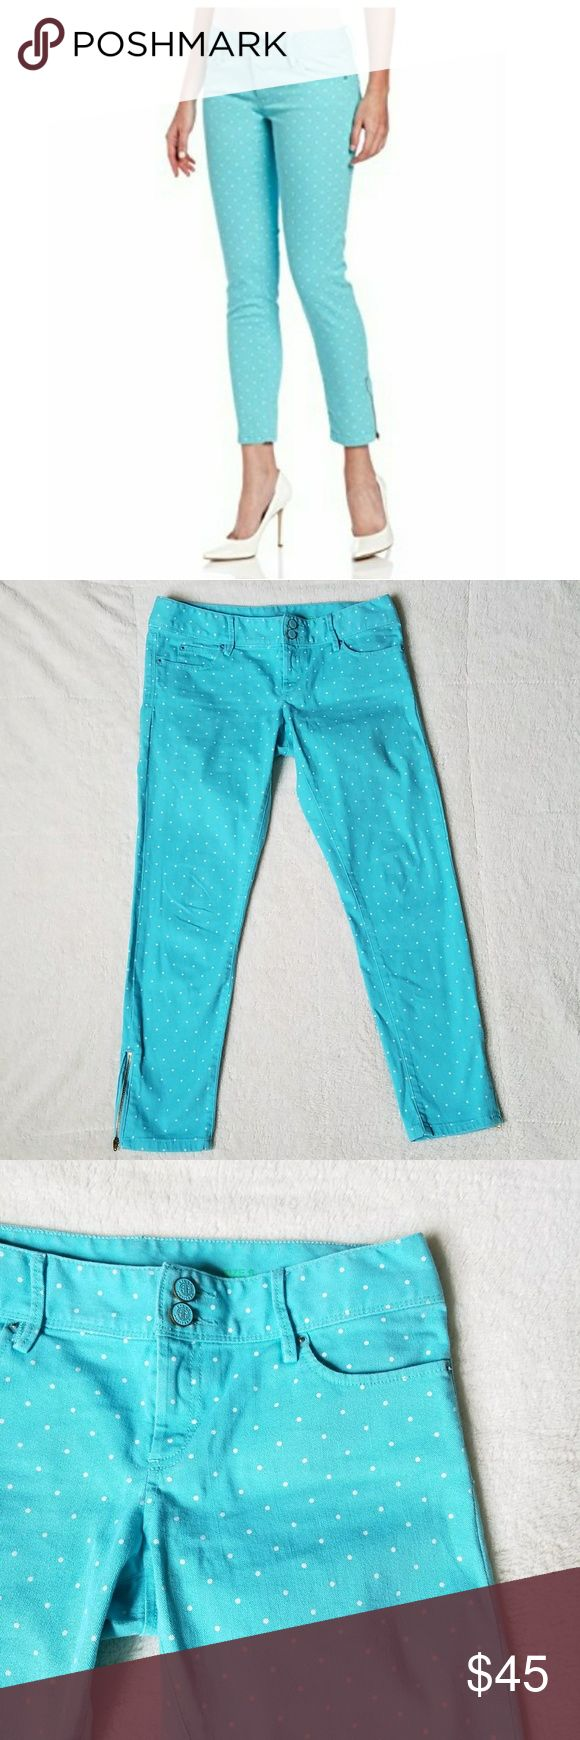 "Lilly Pulitzer Worth Skinny Mini EUC! Bright blue jeans with white polka dots from Lilly Pulitzer, pink label. These Worth Skinny Mini jeans are SOLD OUT on the Lilly website. 33"" waist, 8"" rise and 27"" inseam. Double button and zipper closure, belt loops and 5 pocket style. Zippers at the ankles. Retail new  $158. Lilly Pulitzer Jeans Ankle & Cropped"